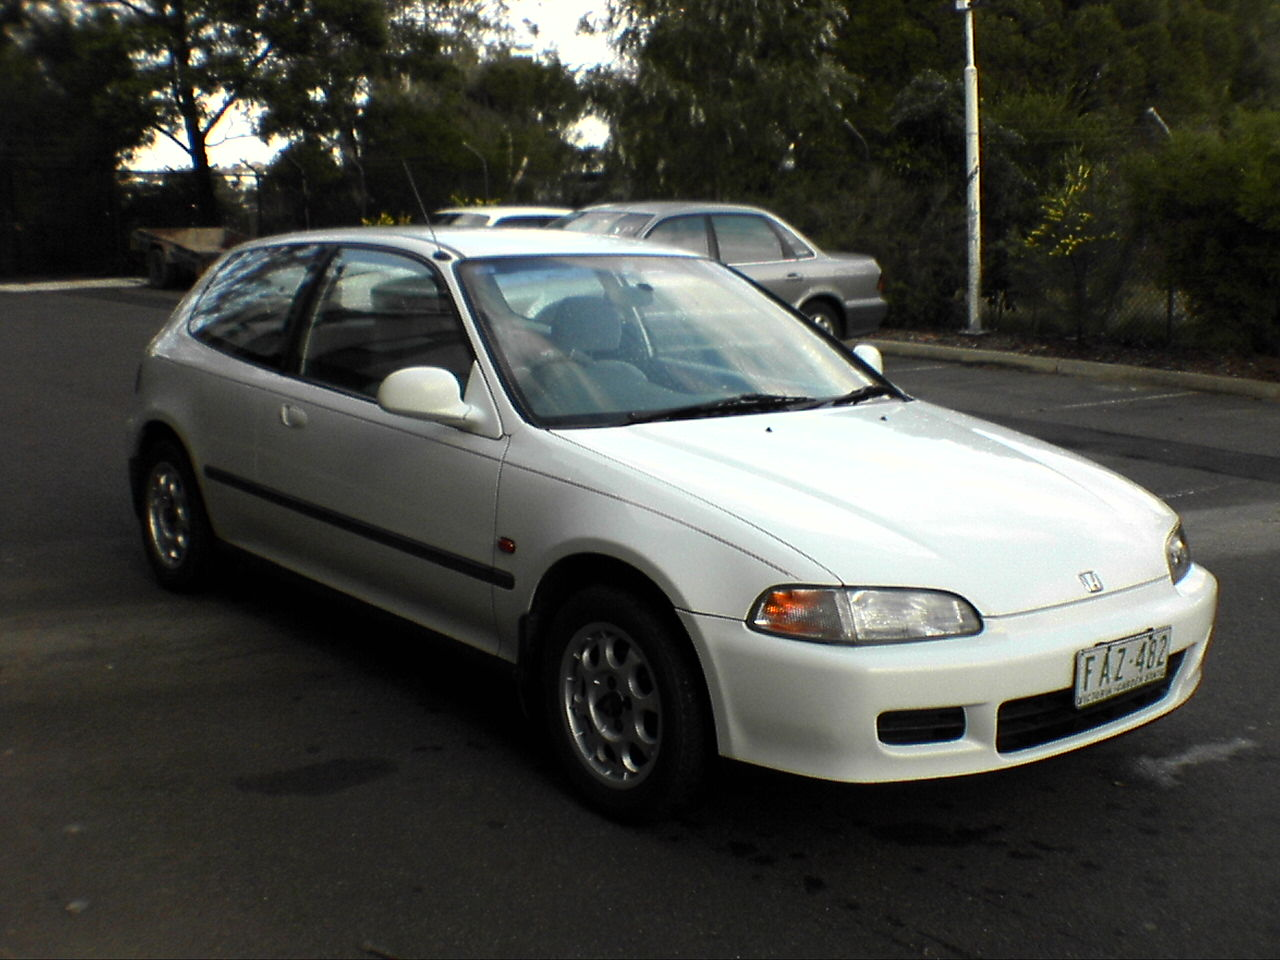 1993 honda civic hatchback - photo #9